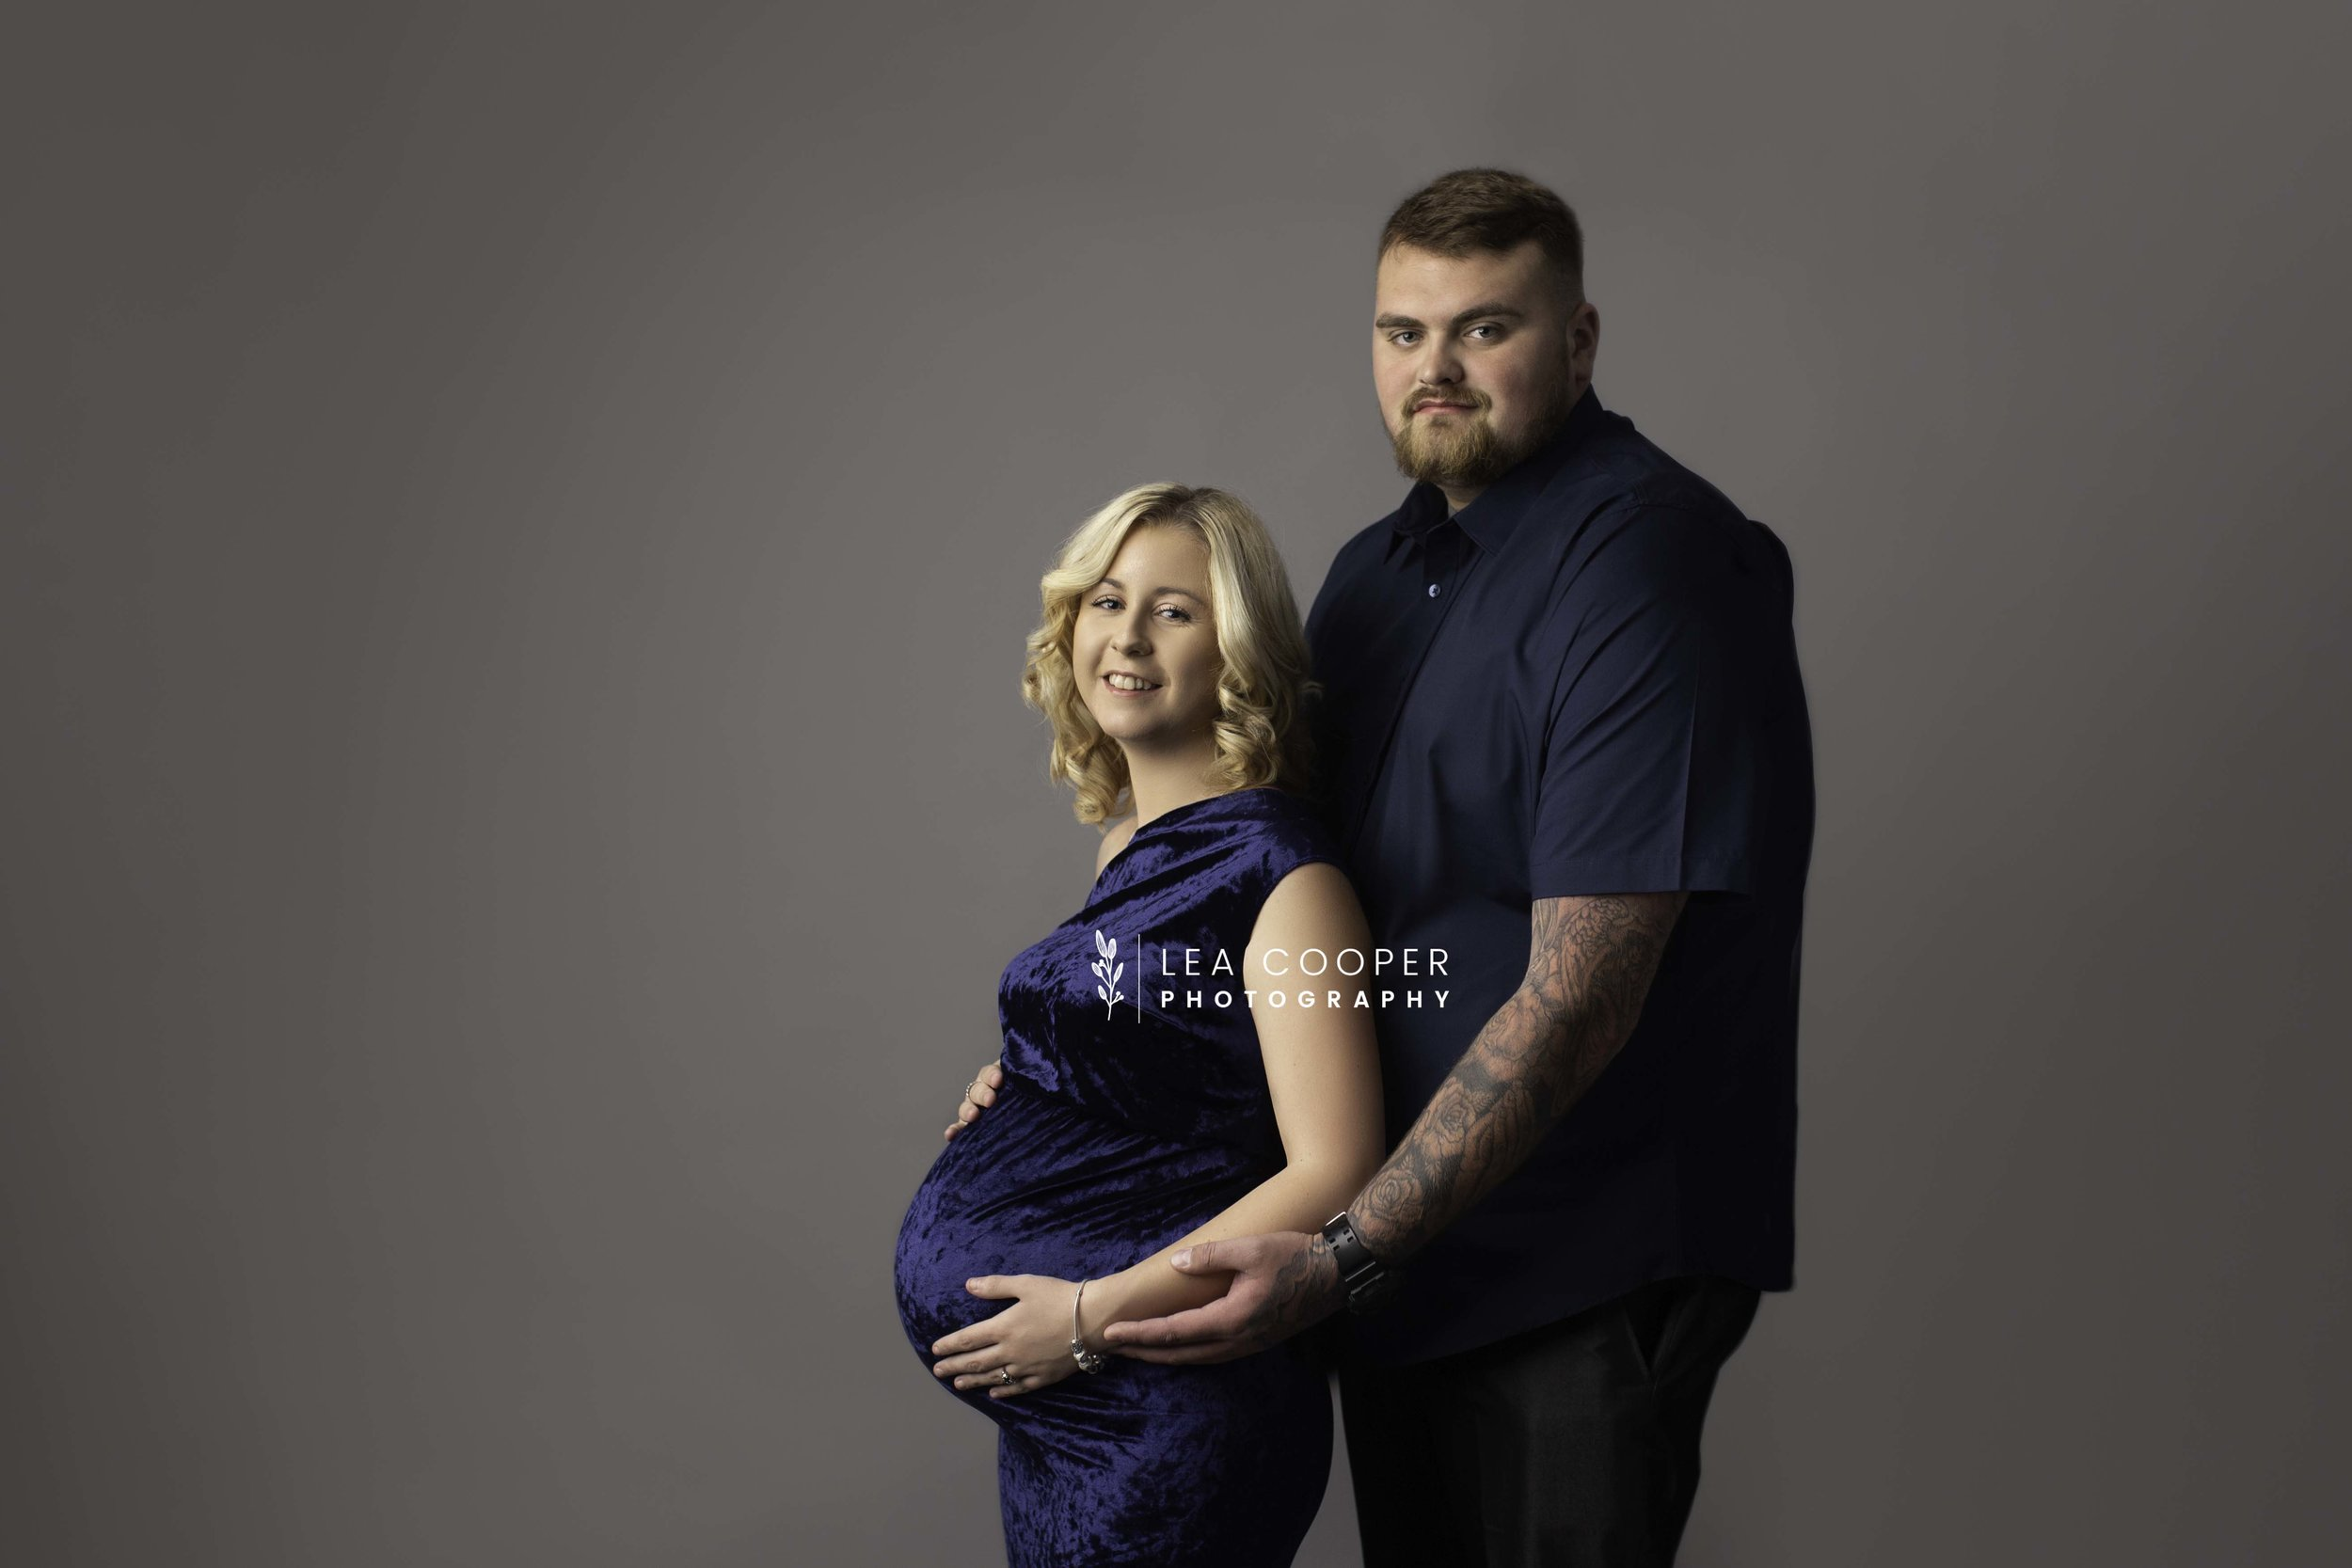 LEA COOPER PHOTOGRAPHY NEWBORN MATERNITY SESSION BABY BUMP SESSION WILLENHALL WEST MIDLANDS WALSALL WEDNESBURY UK2.jpg